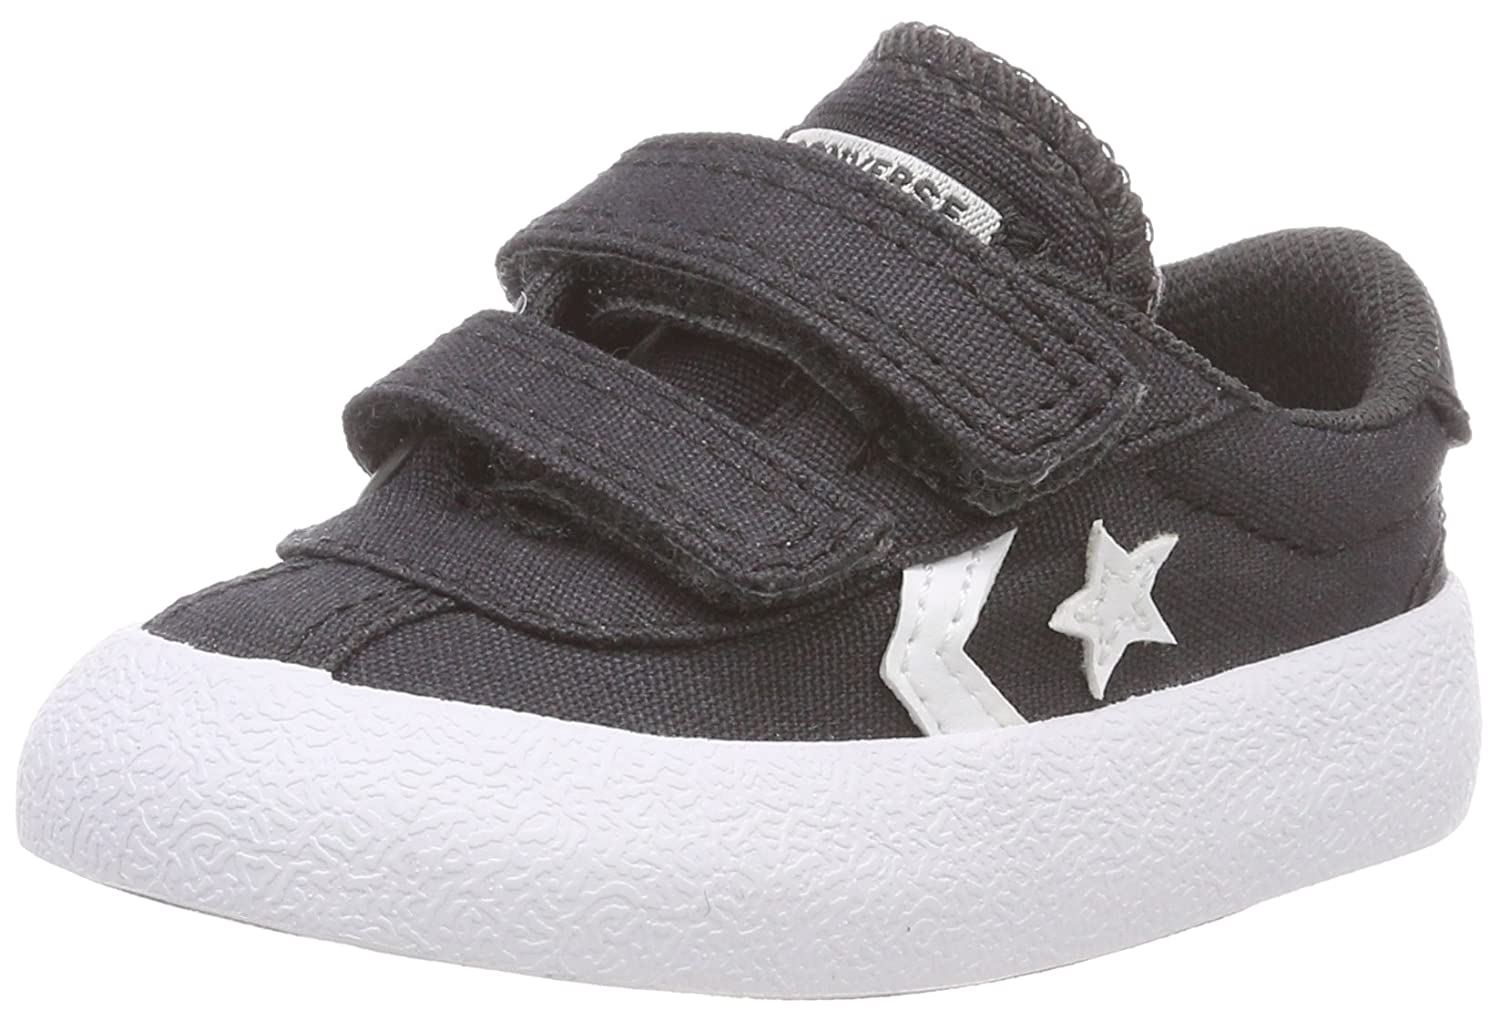 Converse Unisex Babies' Breakpoint 2v Ox Almost Black Birth Shoes 760760C